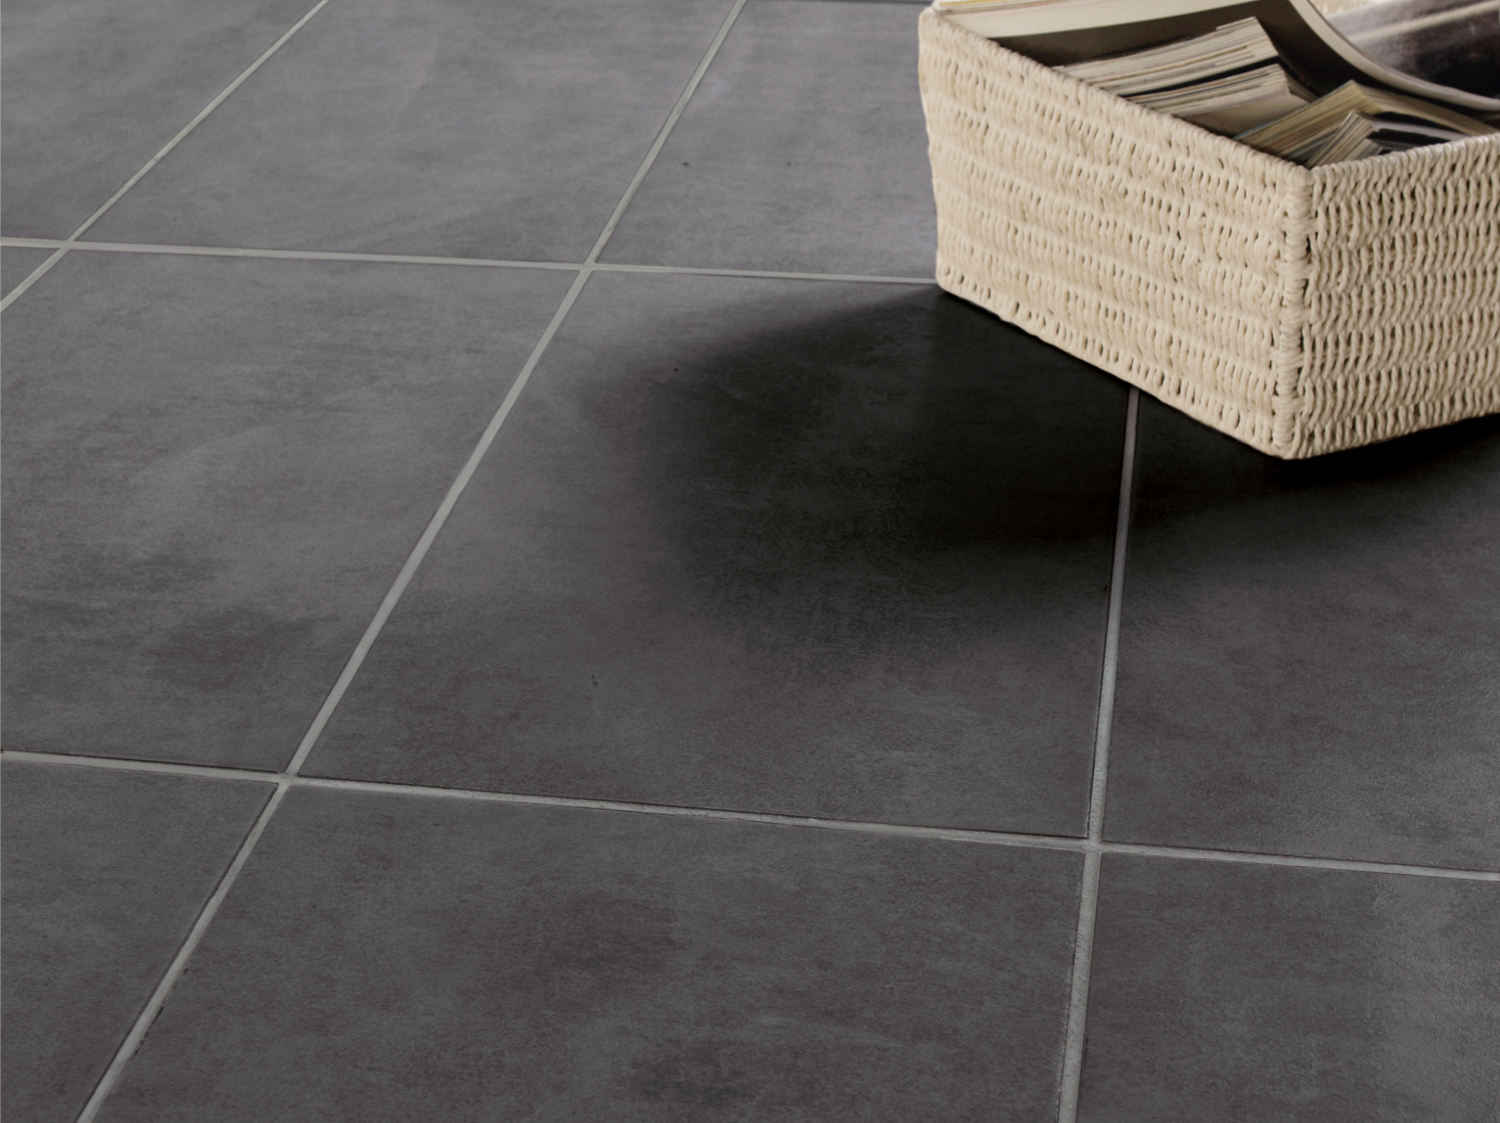 Leroy merlin carrelage sol interieur 28 images leroy for Carrelage salle de bain gris 30x60